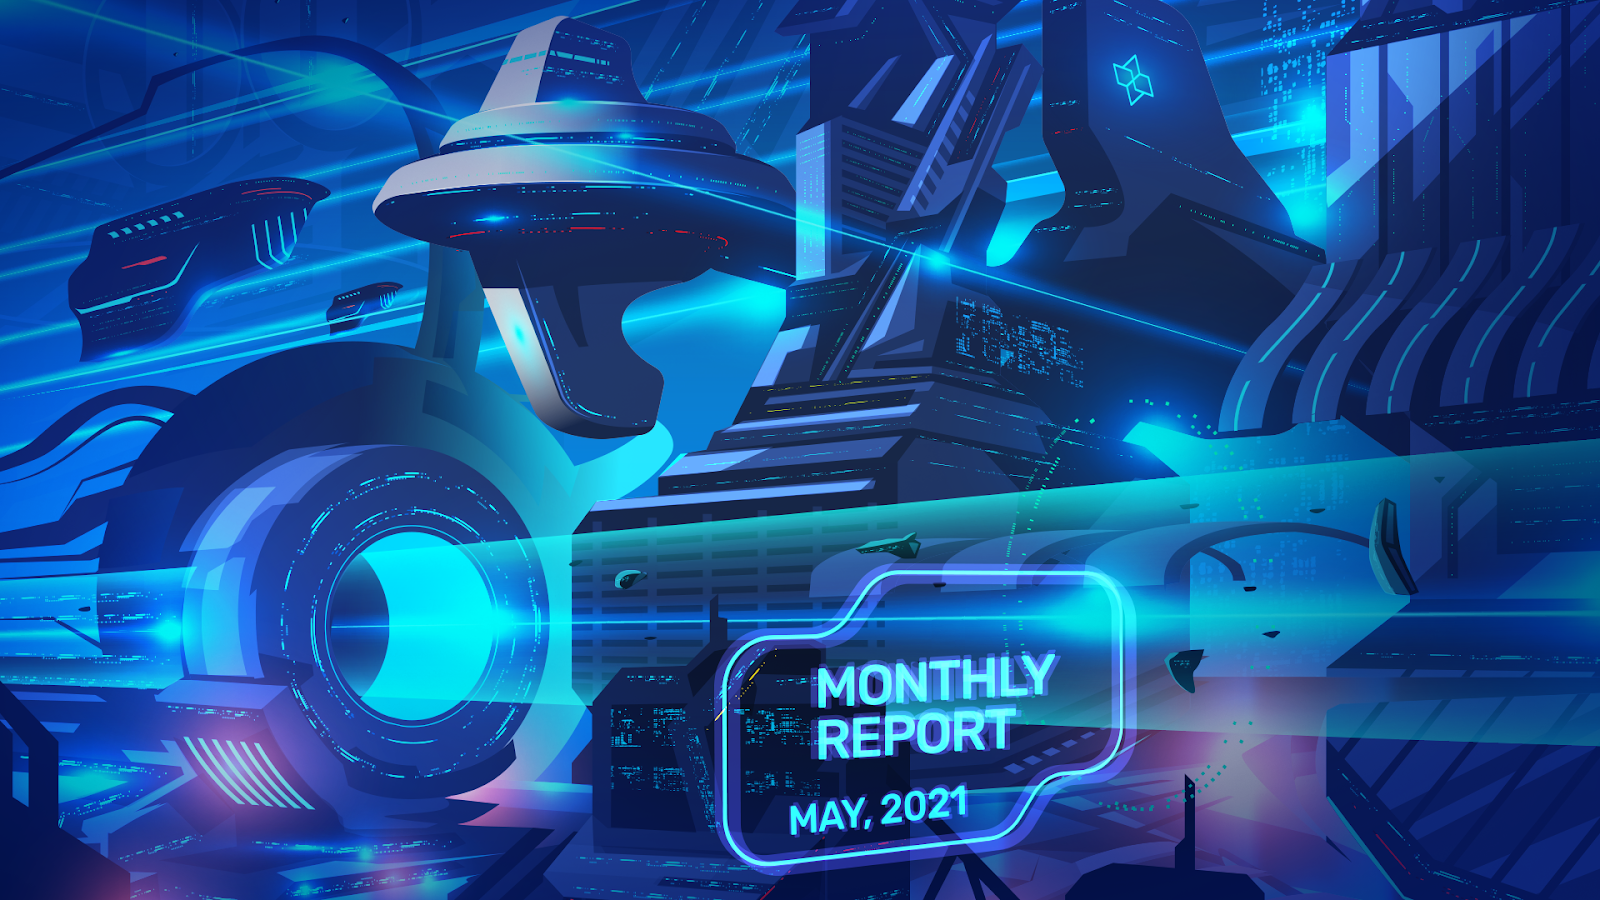 Cartesimay2021 May, 2021 Monthly Report